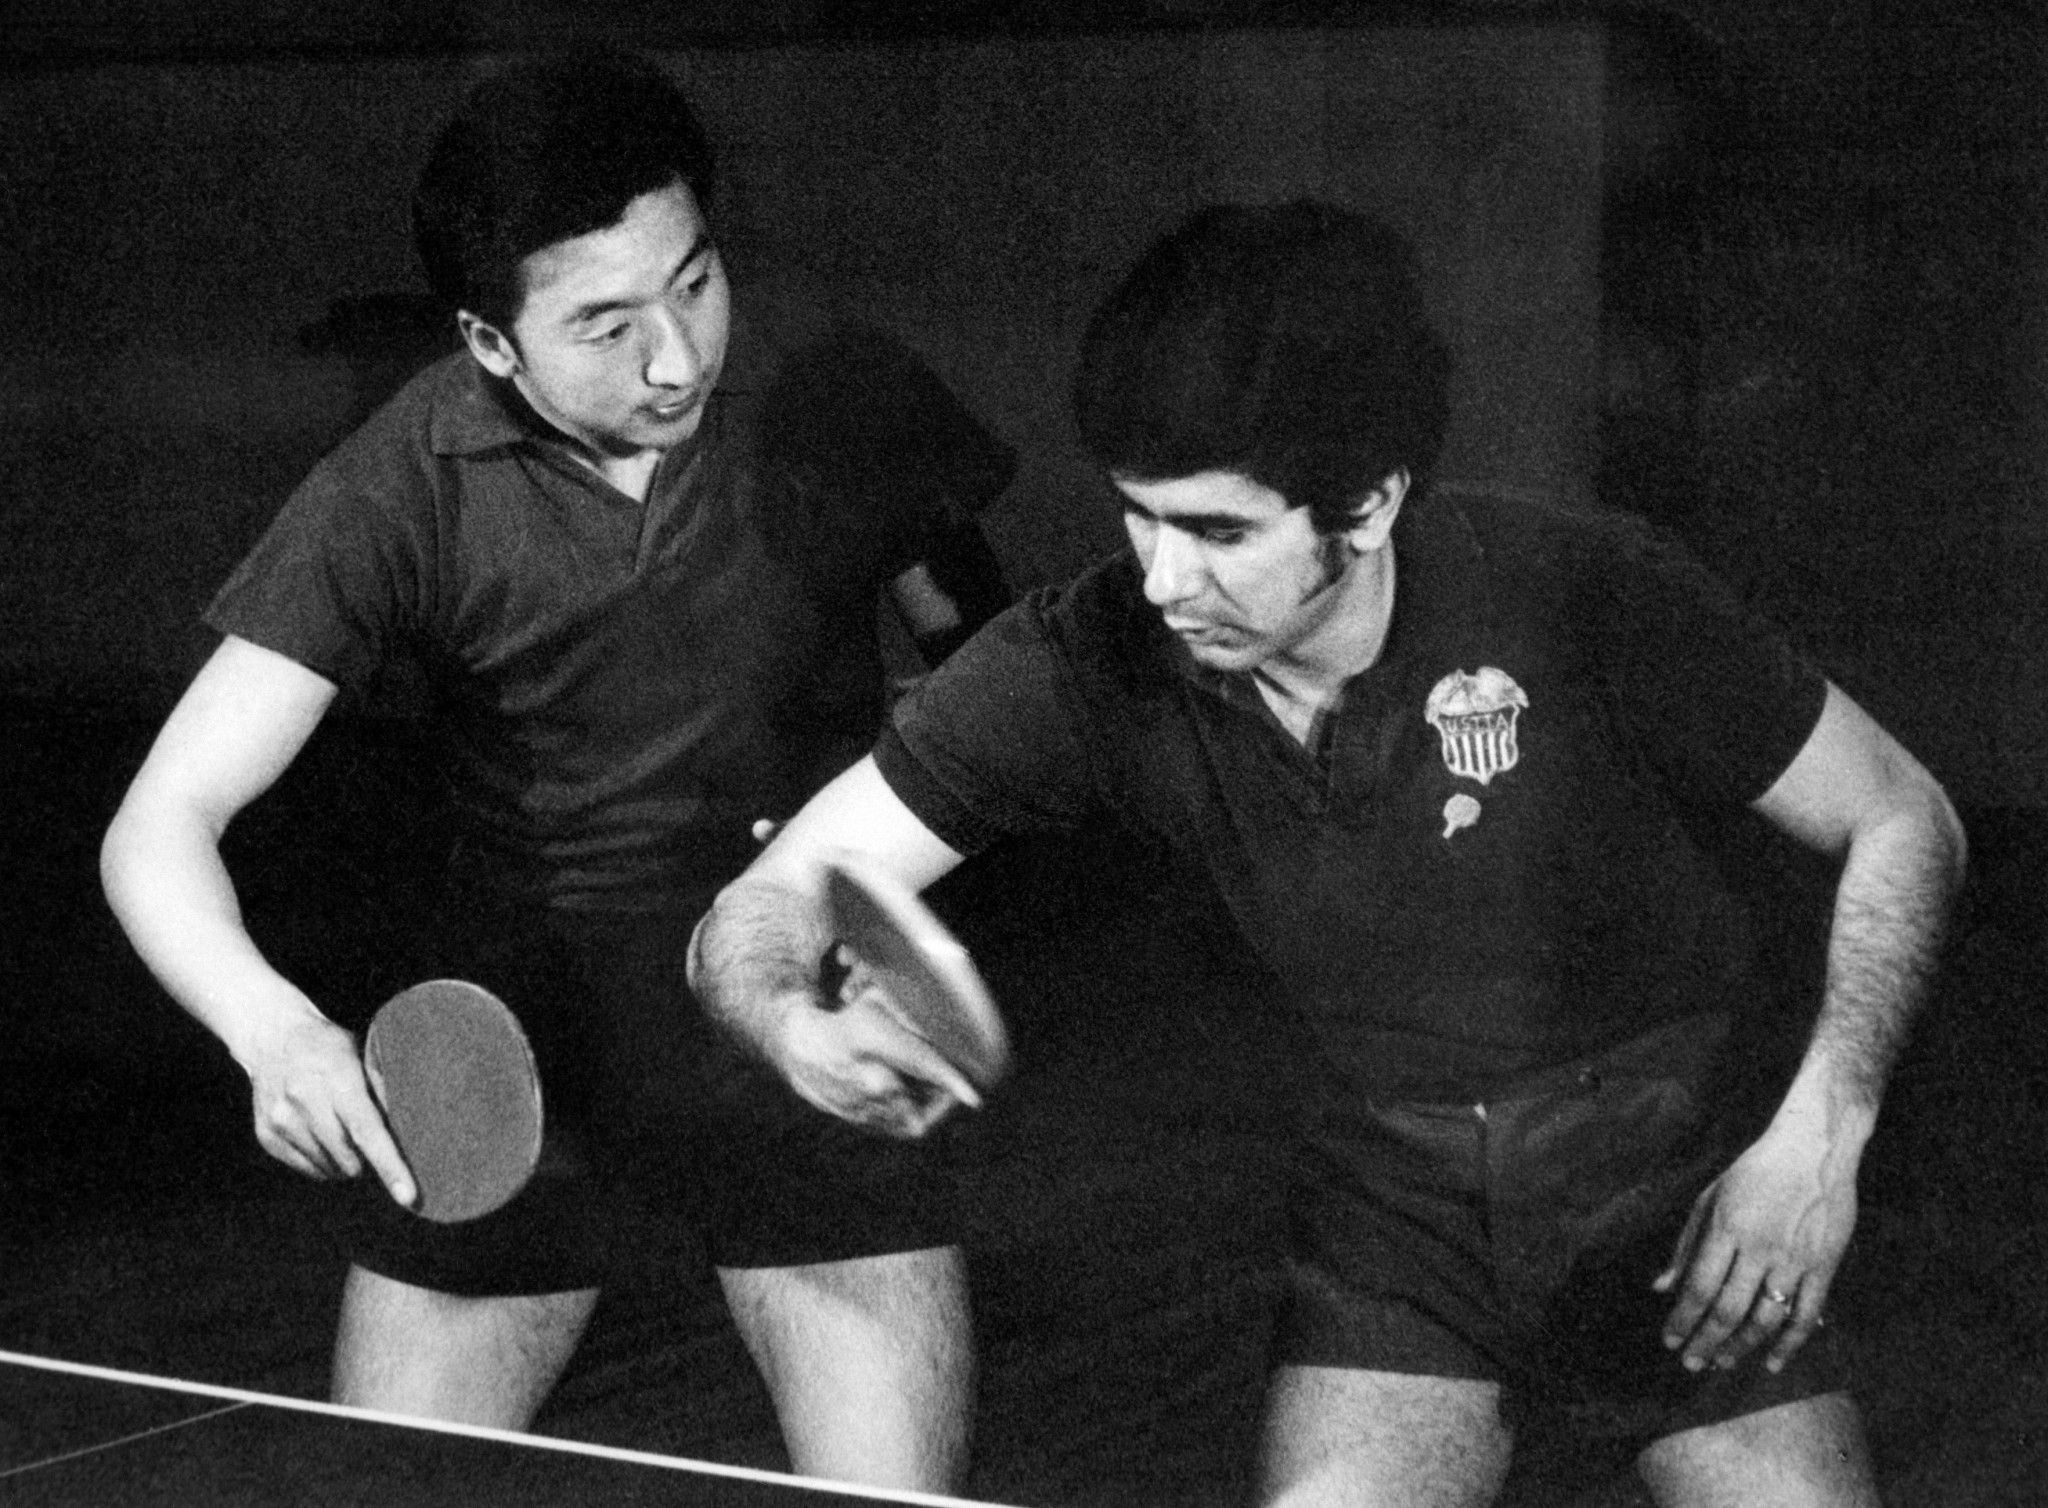 The 2021 and 2022 ITTF World Championships in the United States and China will mark the 50th anniversary of